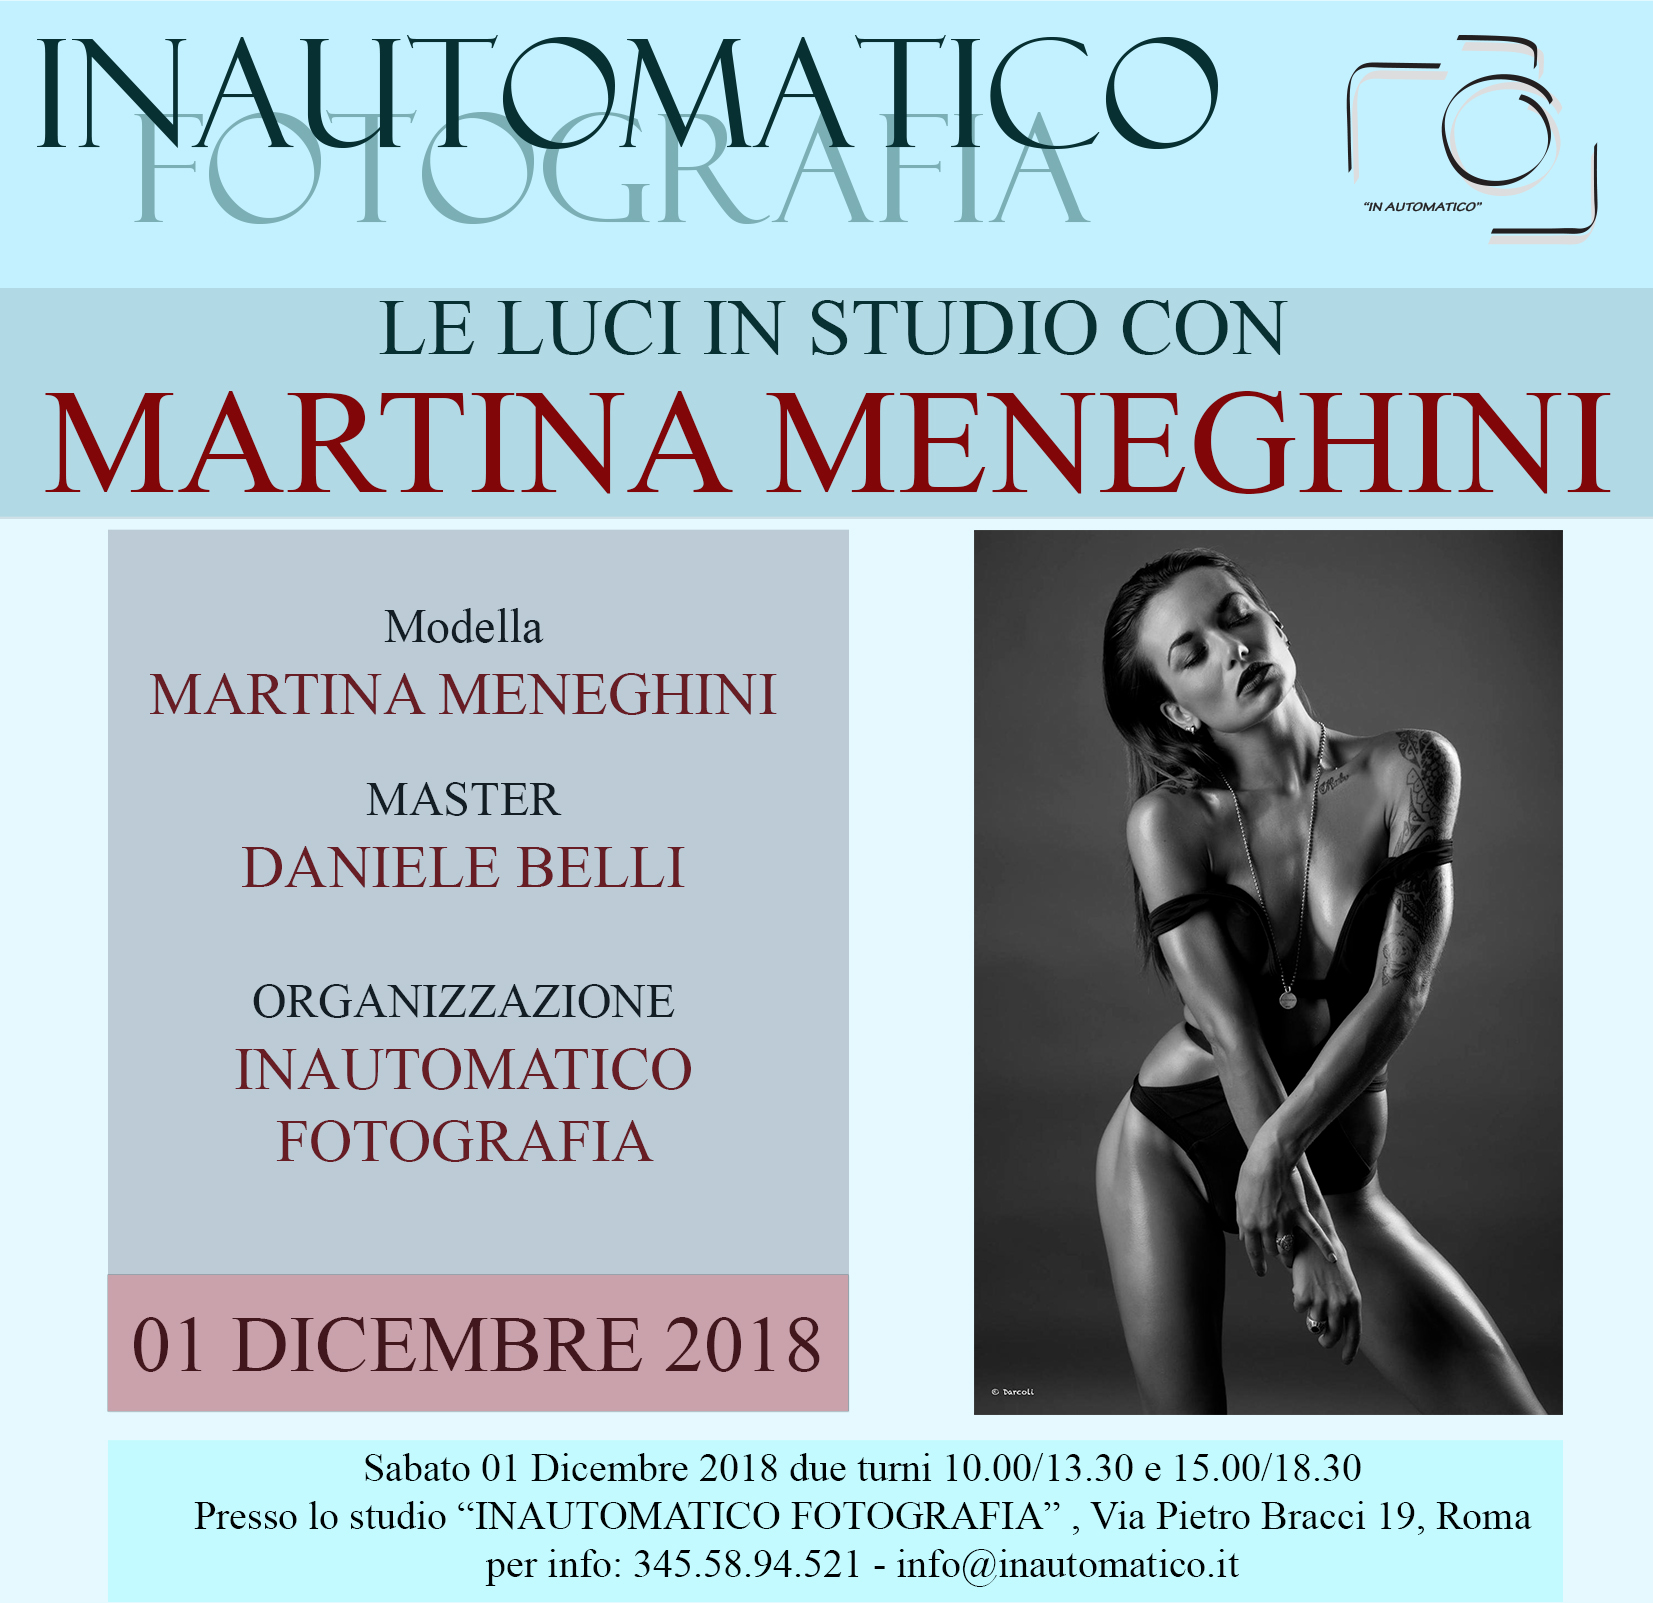 Le luci in studio con Martina Meneghini